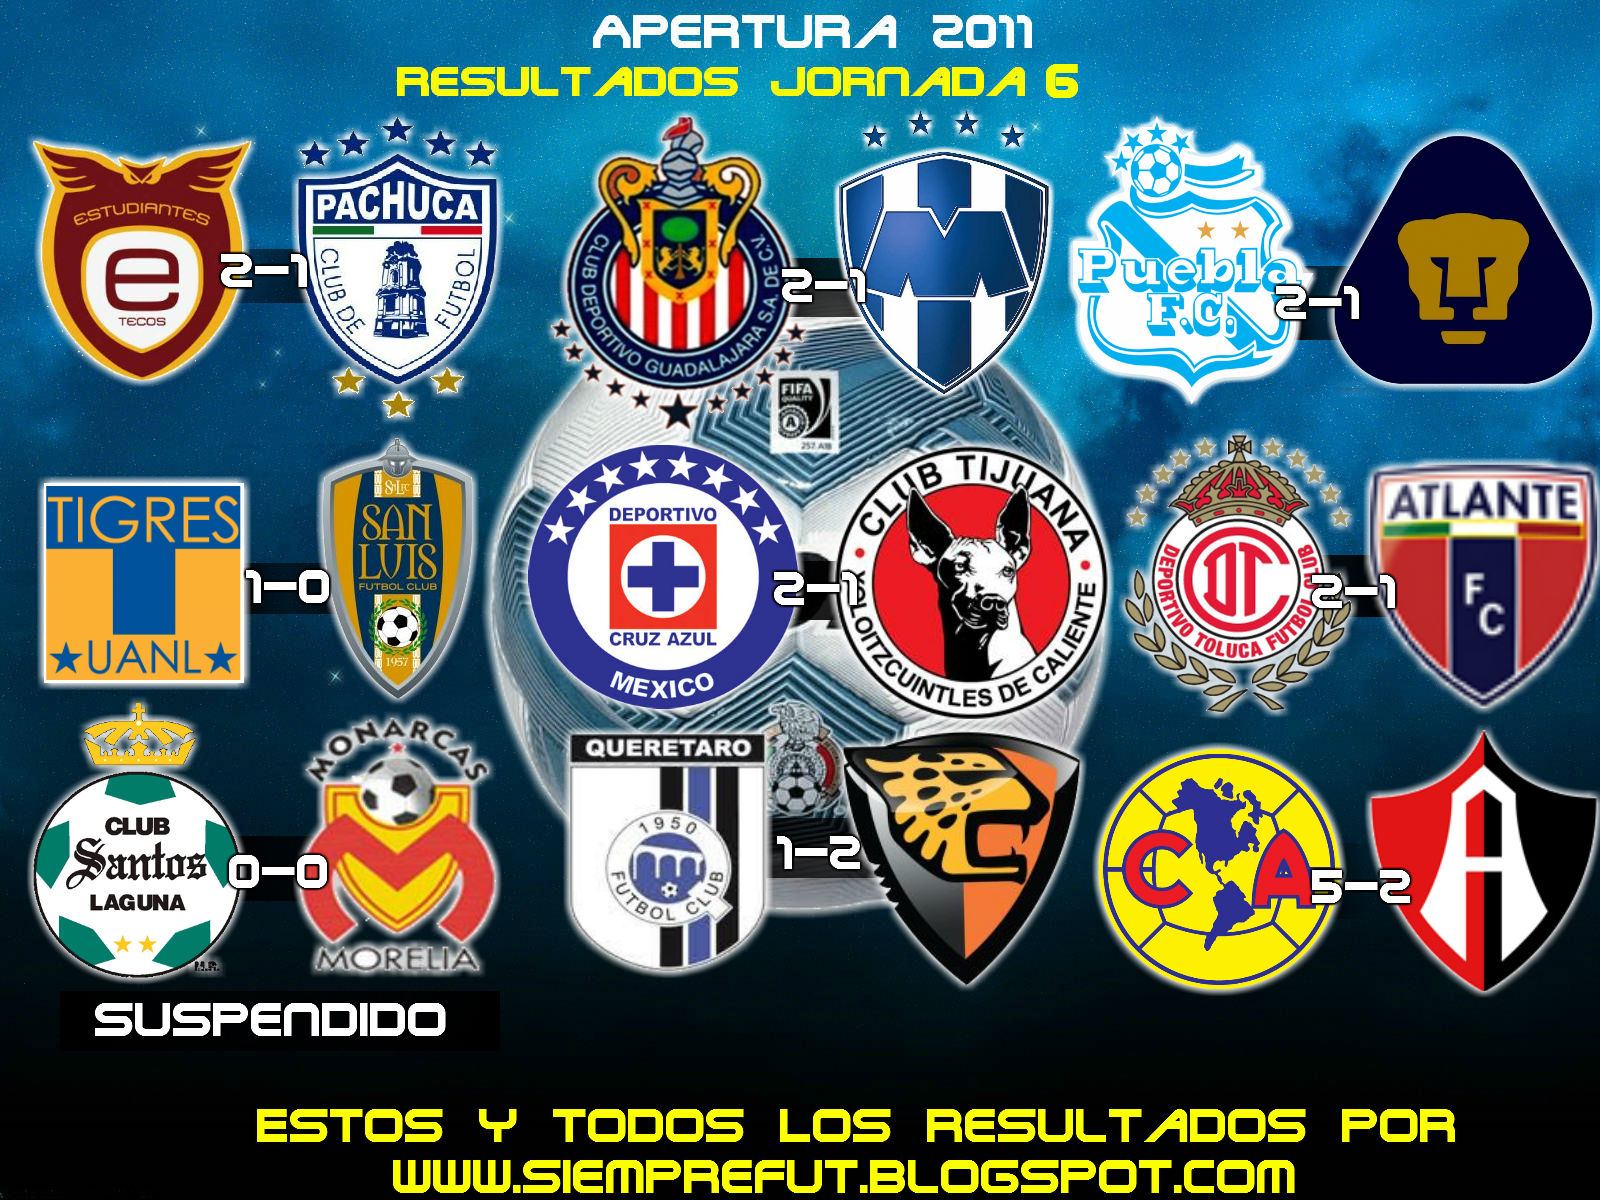 Resultados Futbol Mexicano 2012 Jornada 3 | New Style for 2016-2017